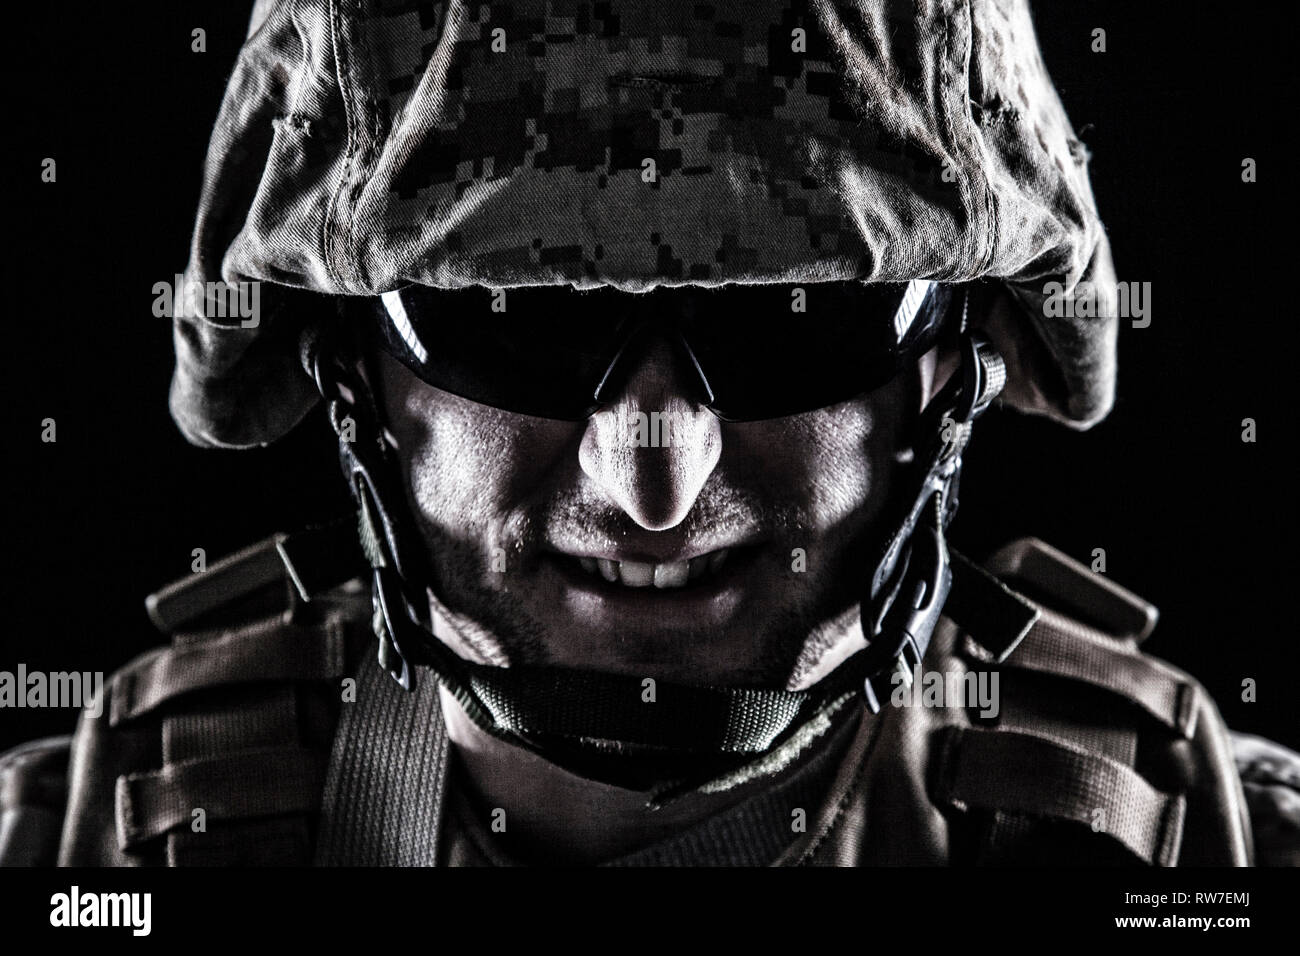 U.S. Marine with grin on his face. - Stock Image